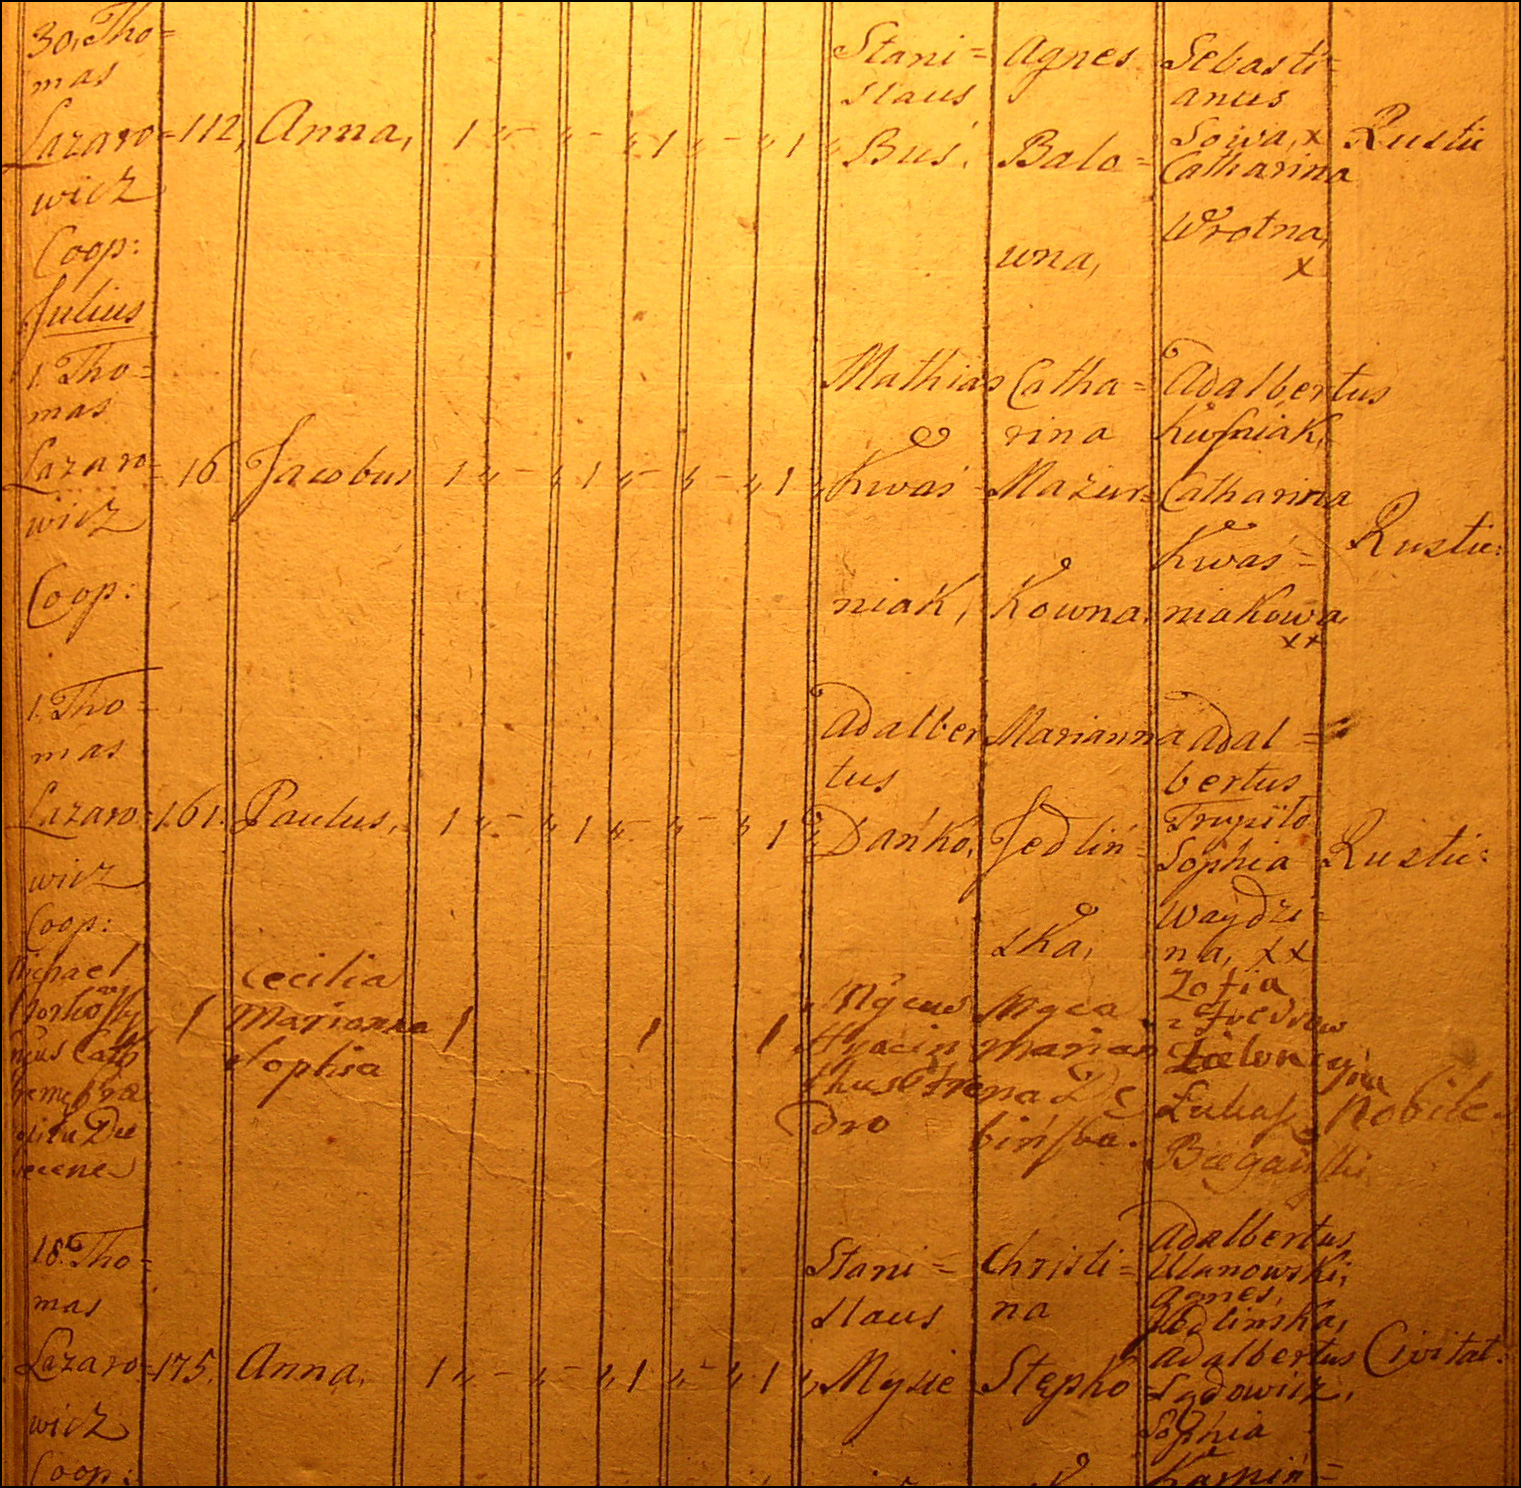 Birth and Baptismal Record for Pawel Danko 1796